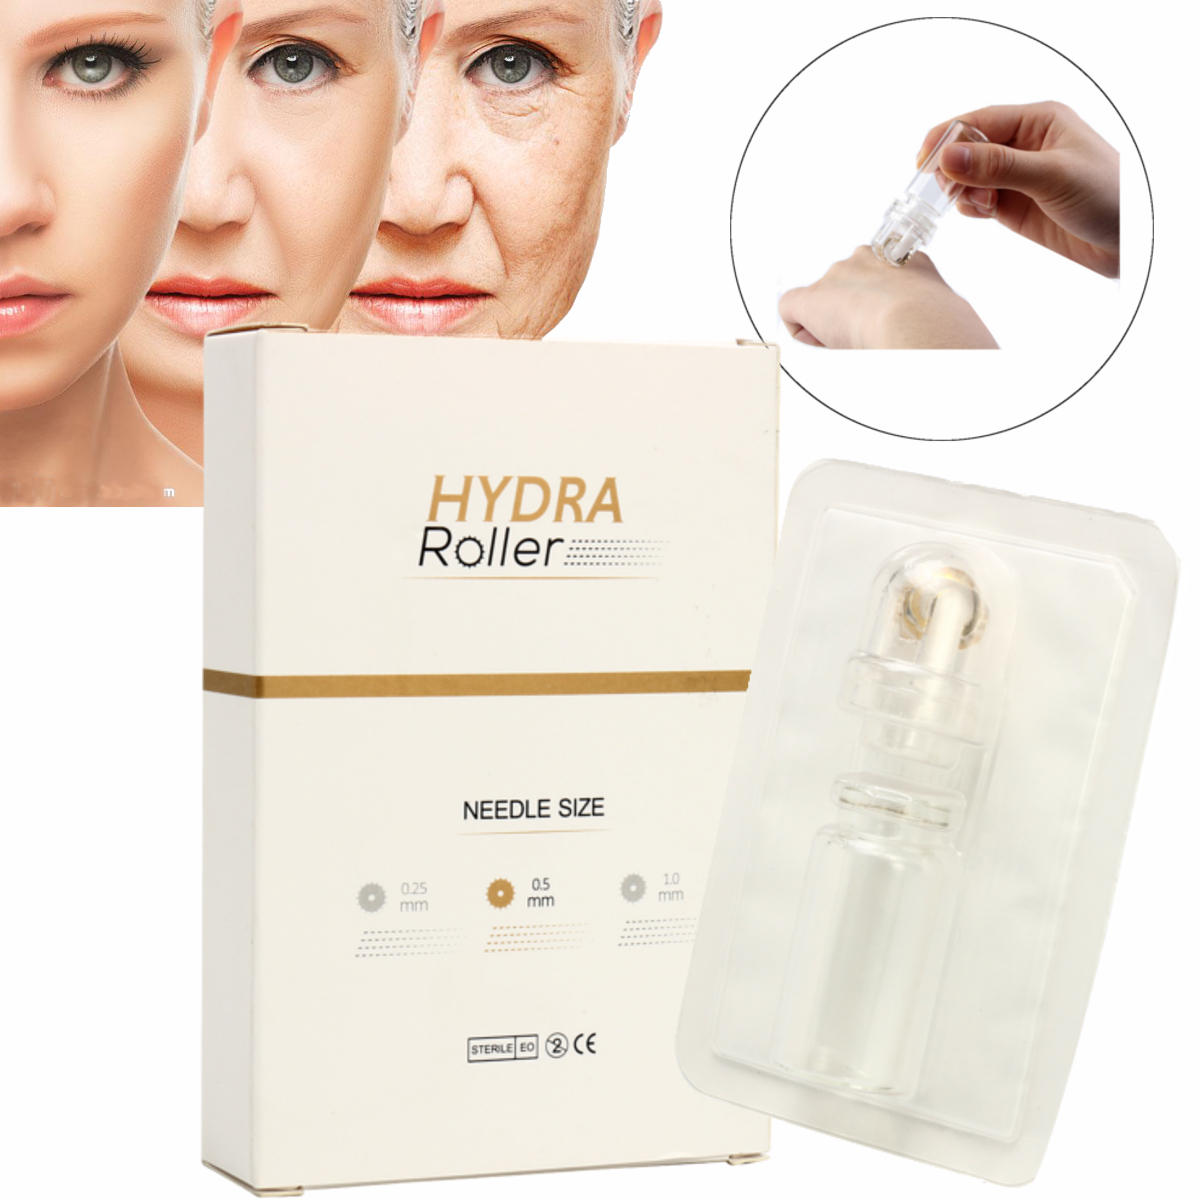 64 Needle Microneedle Roller Micro Needle Therapy Massager Skin Care Recovery Roller Face Care Tool SKU872066